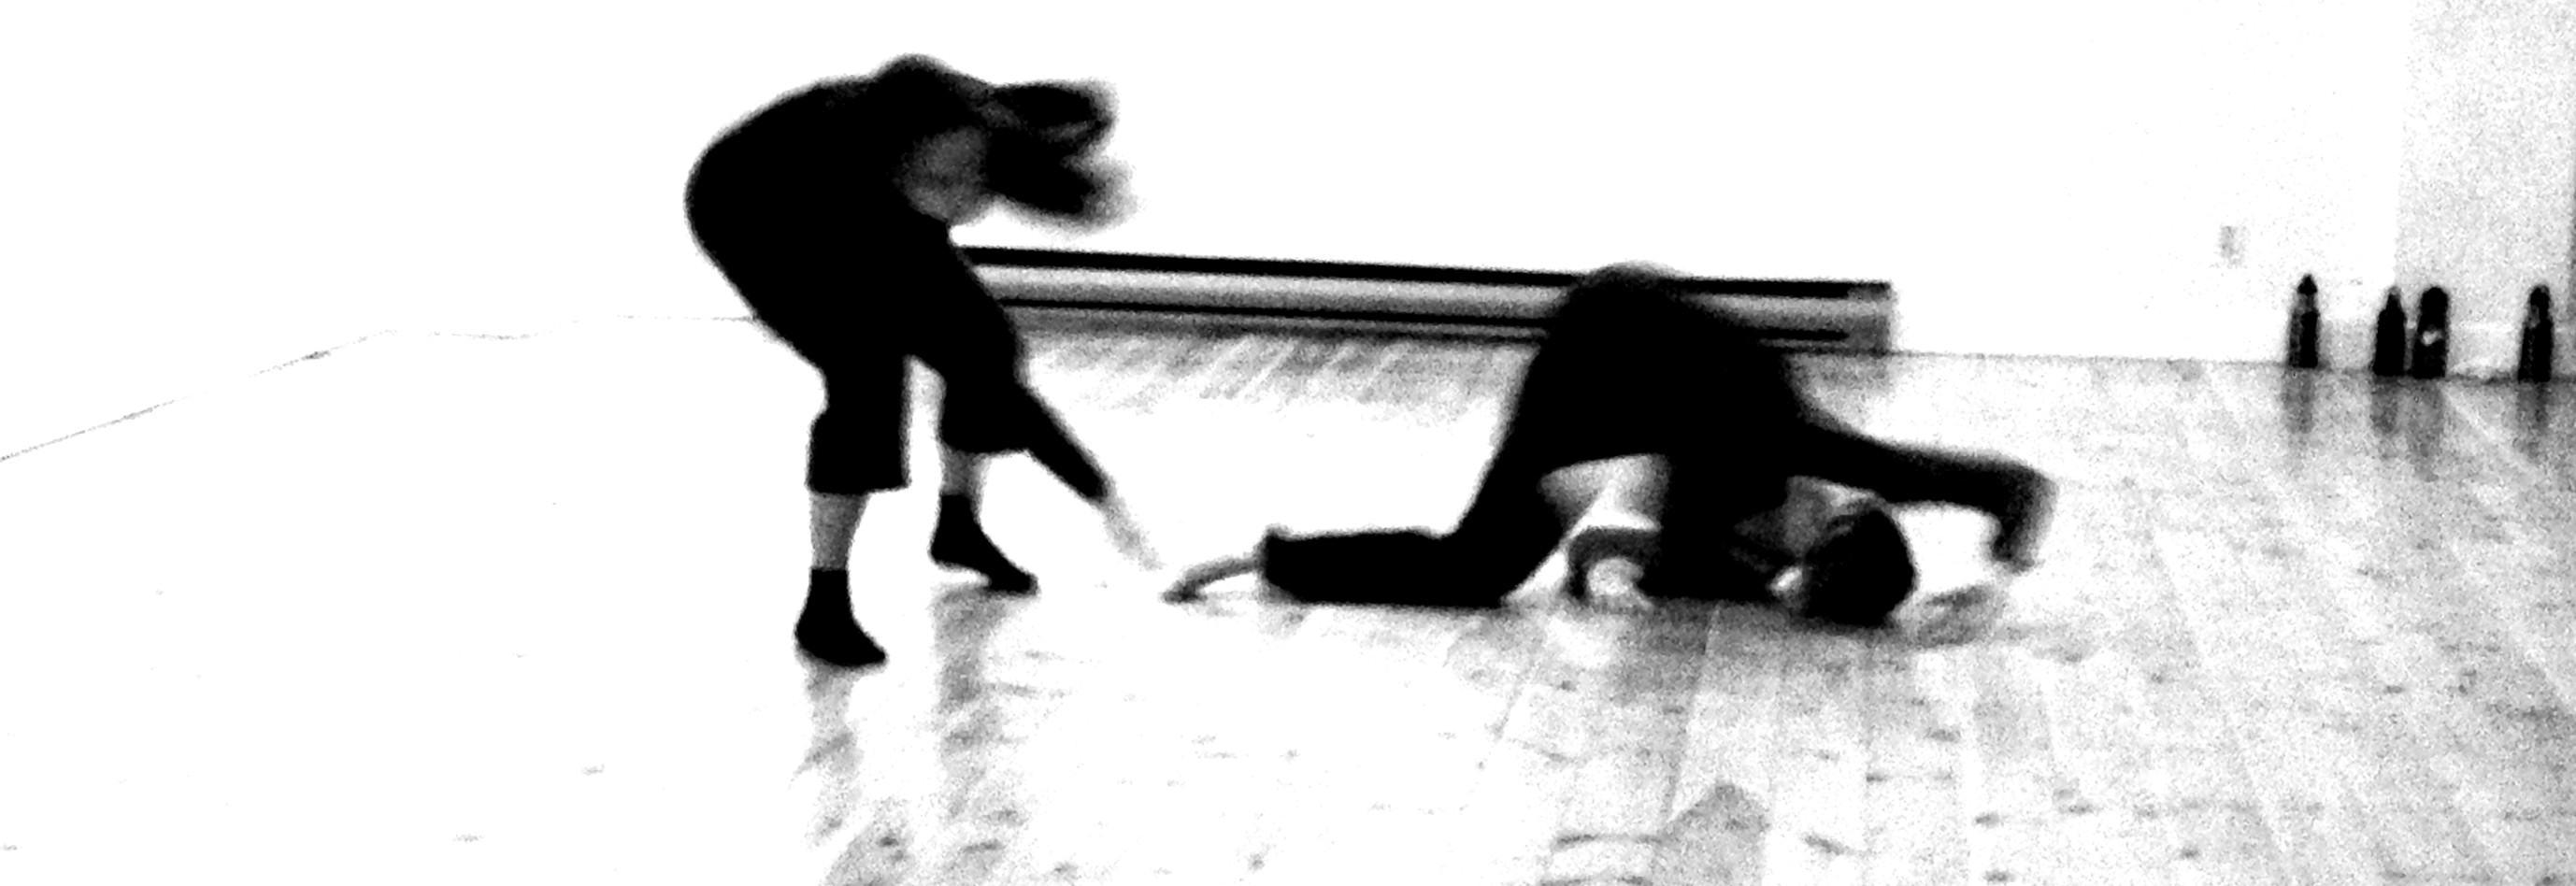 Jam de contact improvisation: En collaboration avec l'ACI